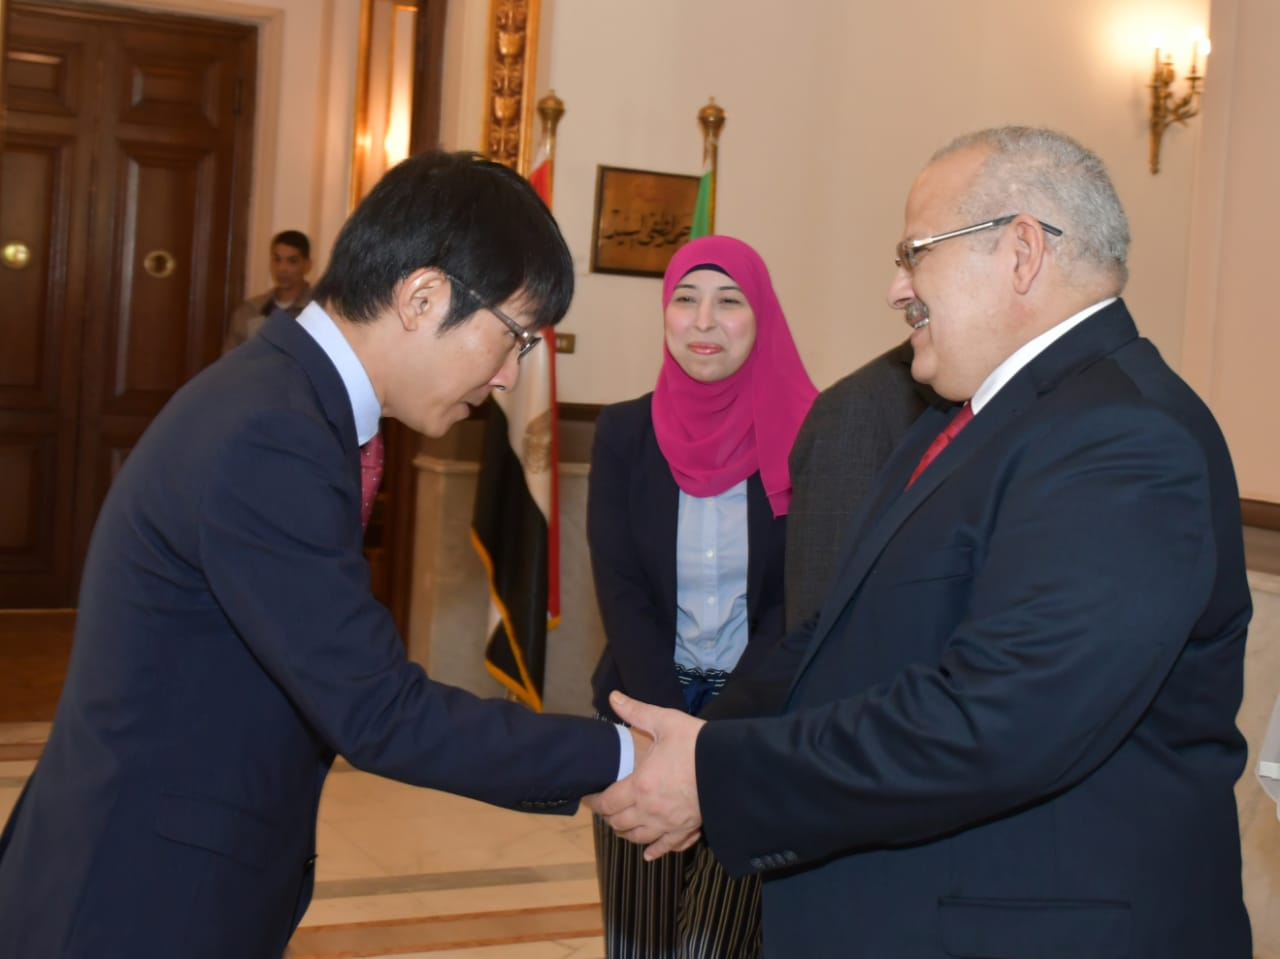 Cairo University president Dr. Mohamed Othman Elkhosht received on Thursday Japan International Cooperation Agency (JICA)'s Egypt Office Chief Representative Yoshifumi Omura, and his accompanying delegation, to discuss ways to deepen bilateral cooperation in education and research fields.